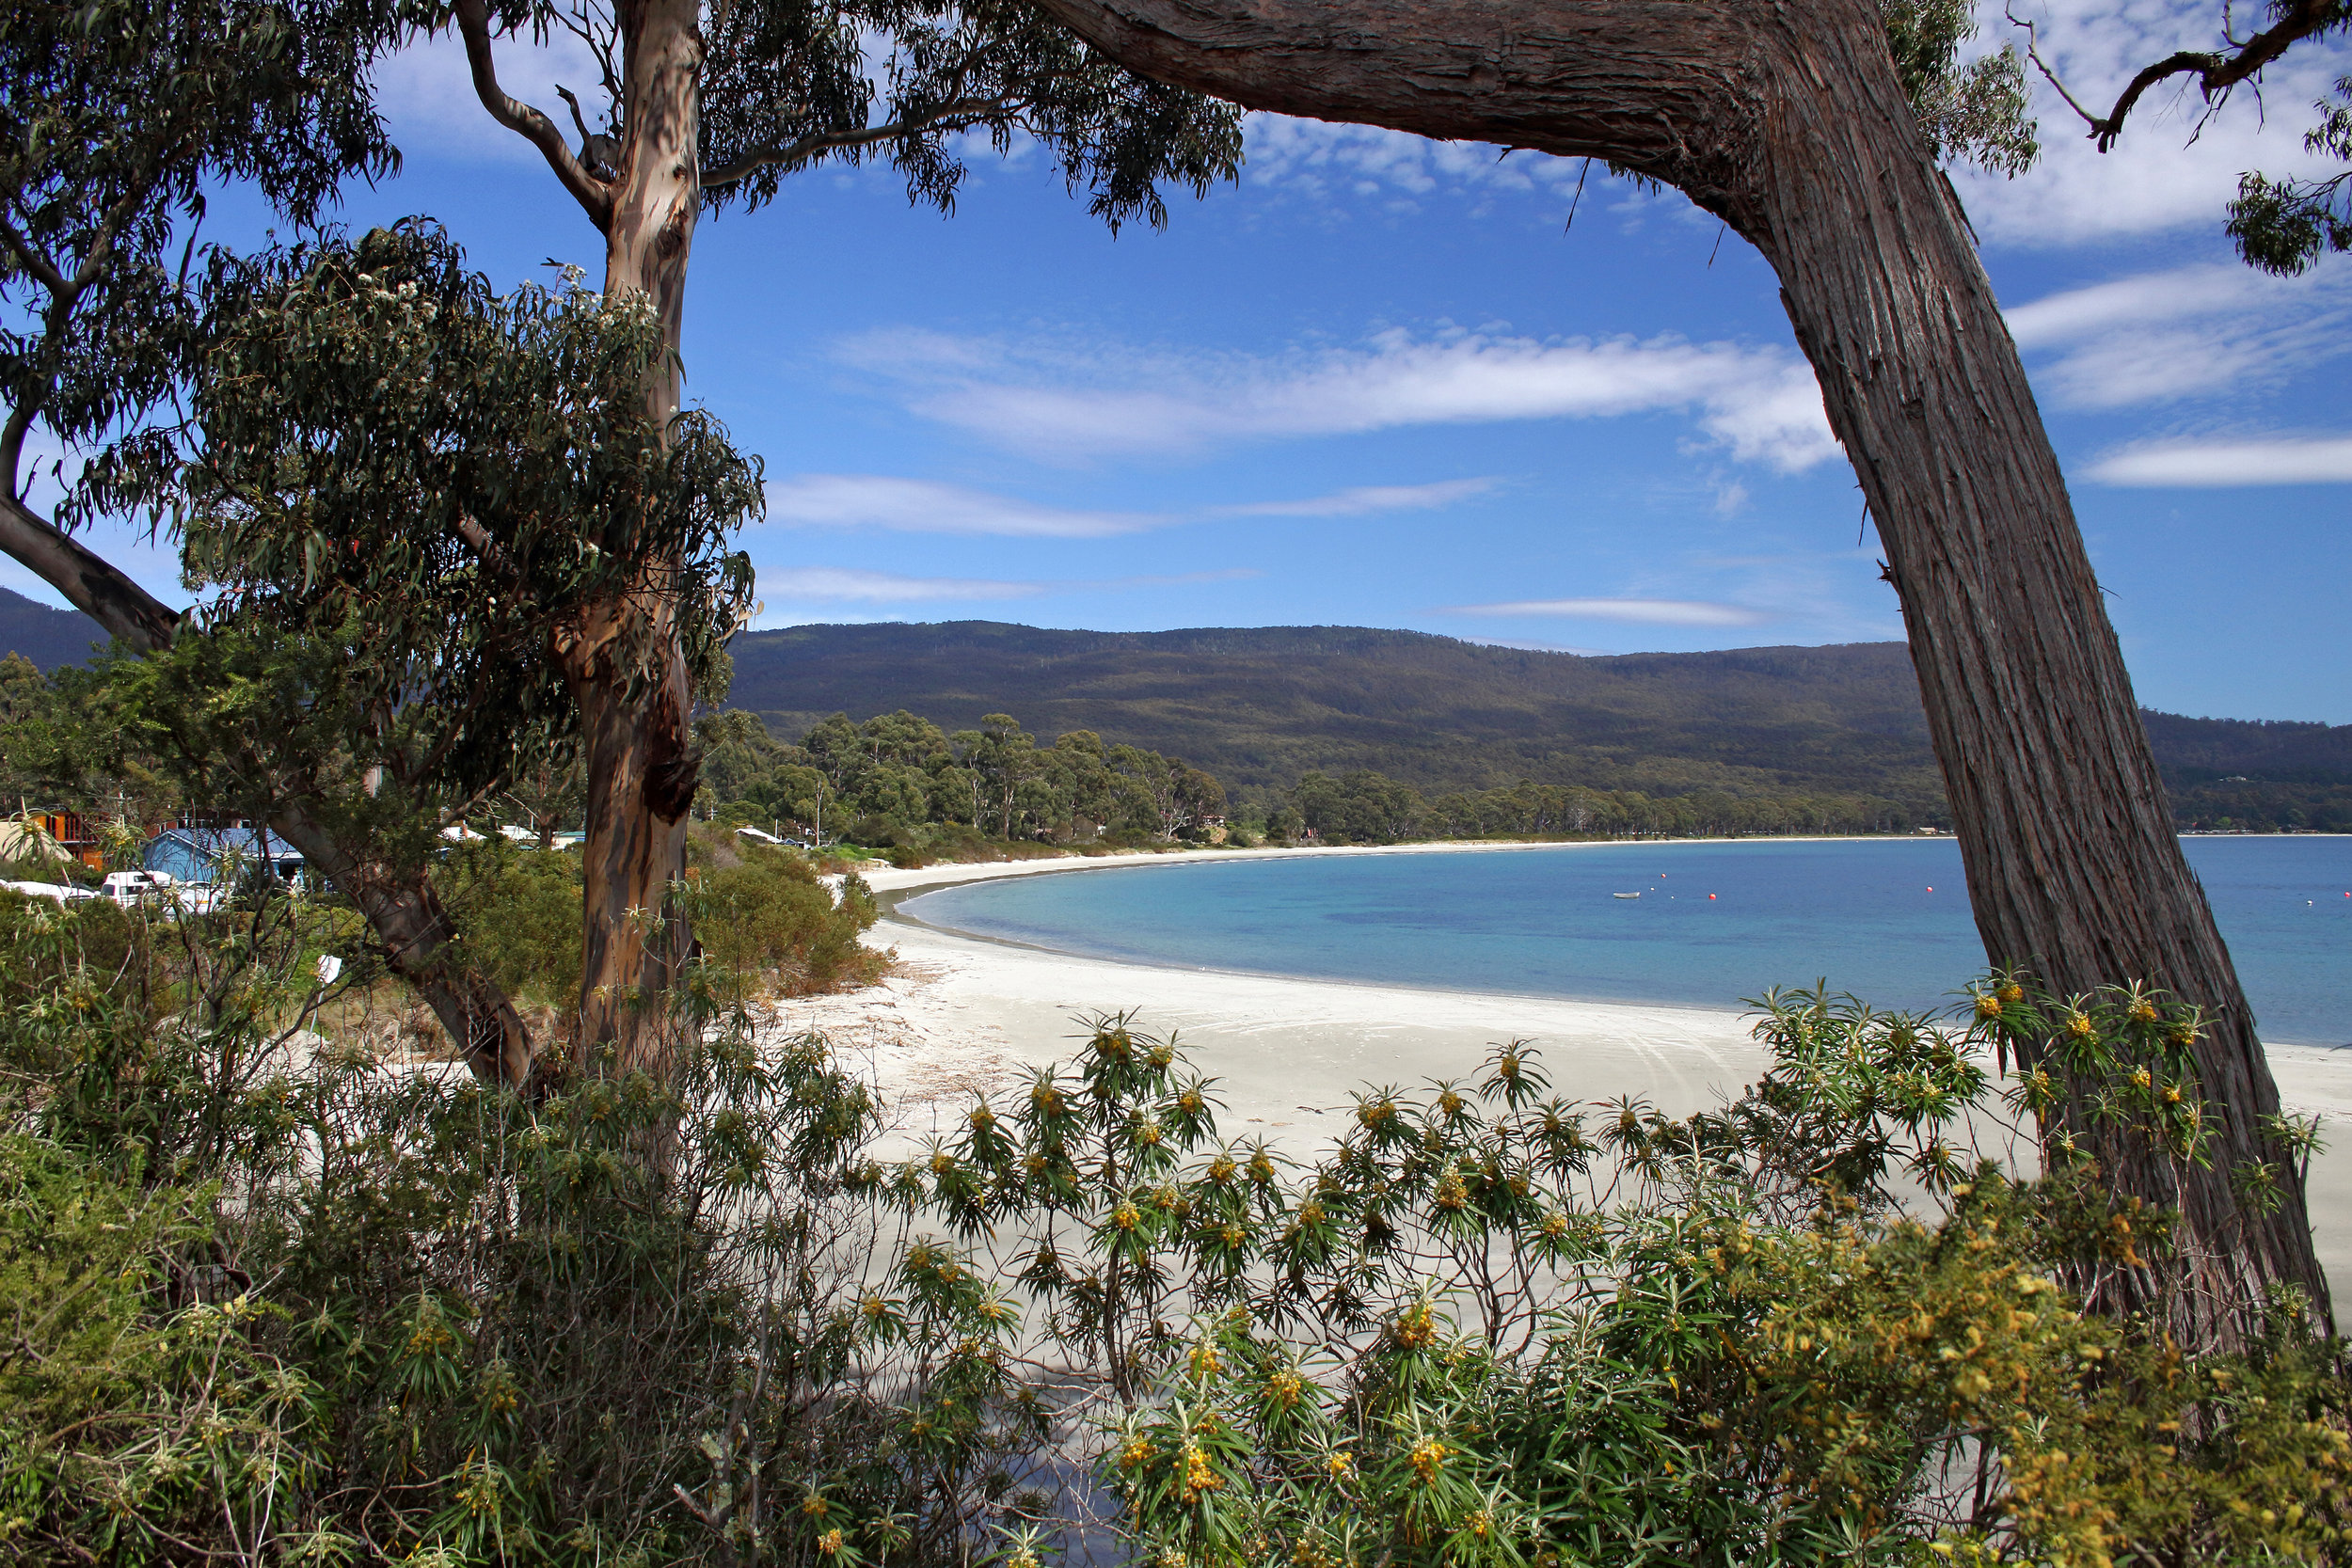 - The core breeding habitat of the Critically Endangered Swift Parrot. The birds nest in hollows of old trees, that may take years to grow, and feed on local flowering trees. They cannot breed successfully without their co-occurring tree hollow and flowering forest.Bruny Island also supports internationally important habitat for the Endangered Forty-spotted Pardalote and a suite of other threatened flora and fauna.